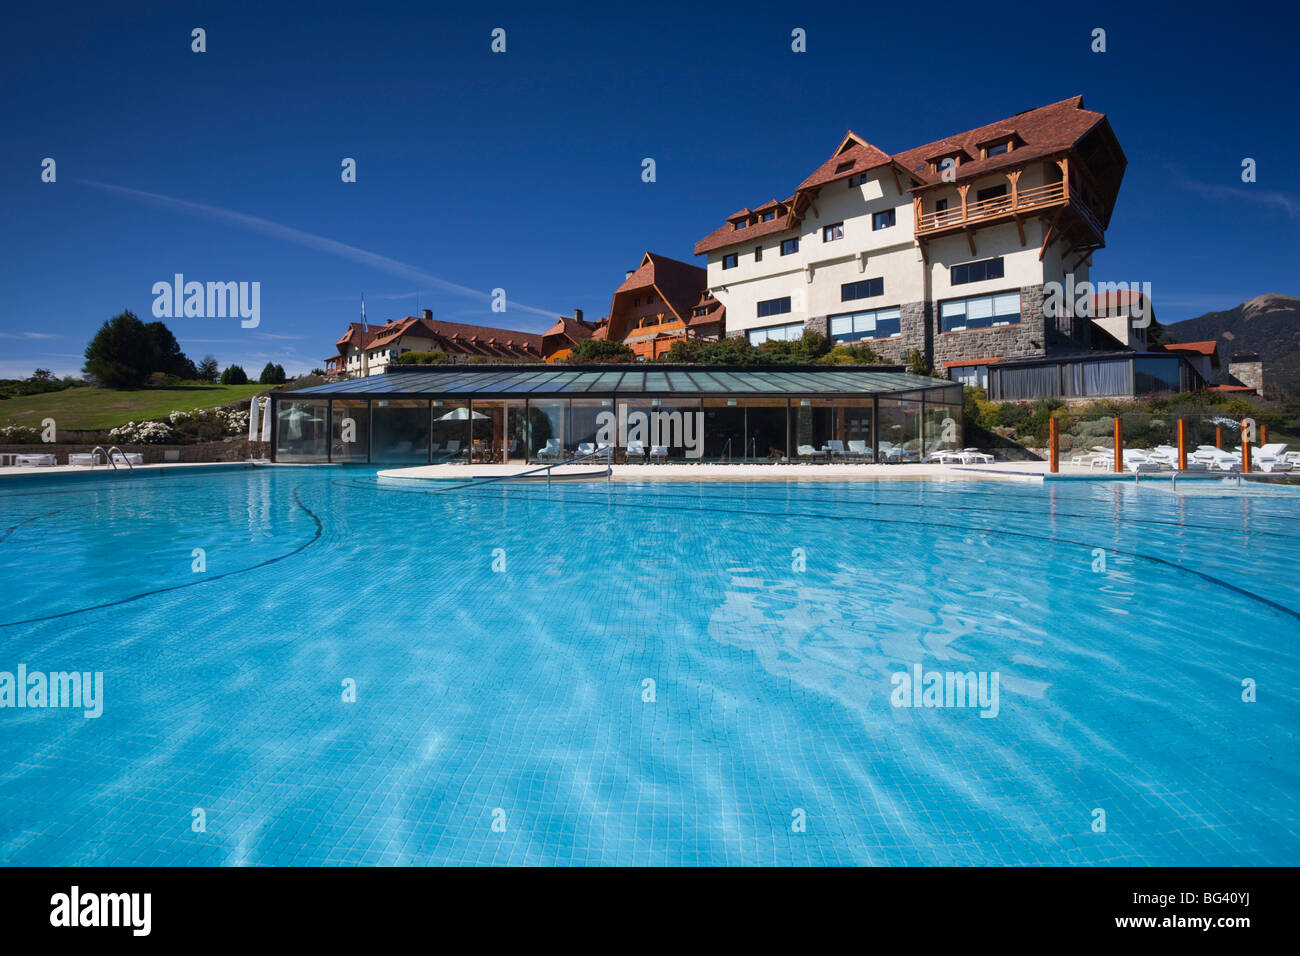 Argentina Rio Negro Province Lake District Llao Llao Hotel Llao Stock Photo Royalty Free